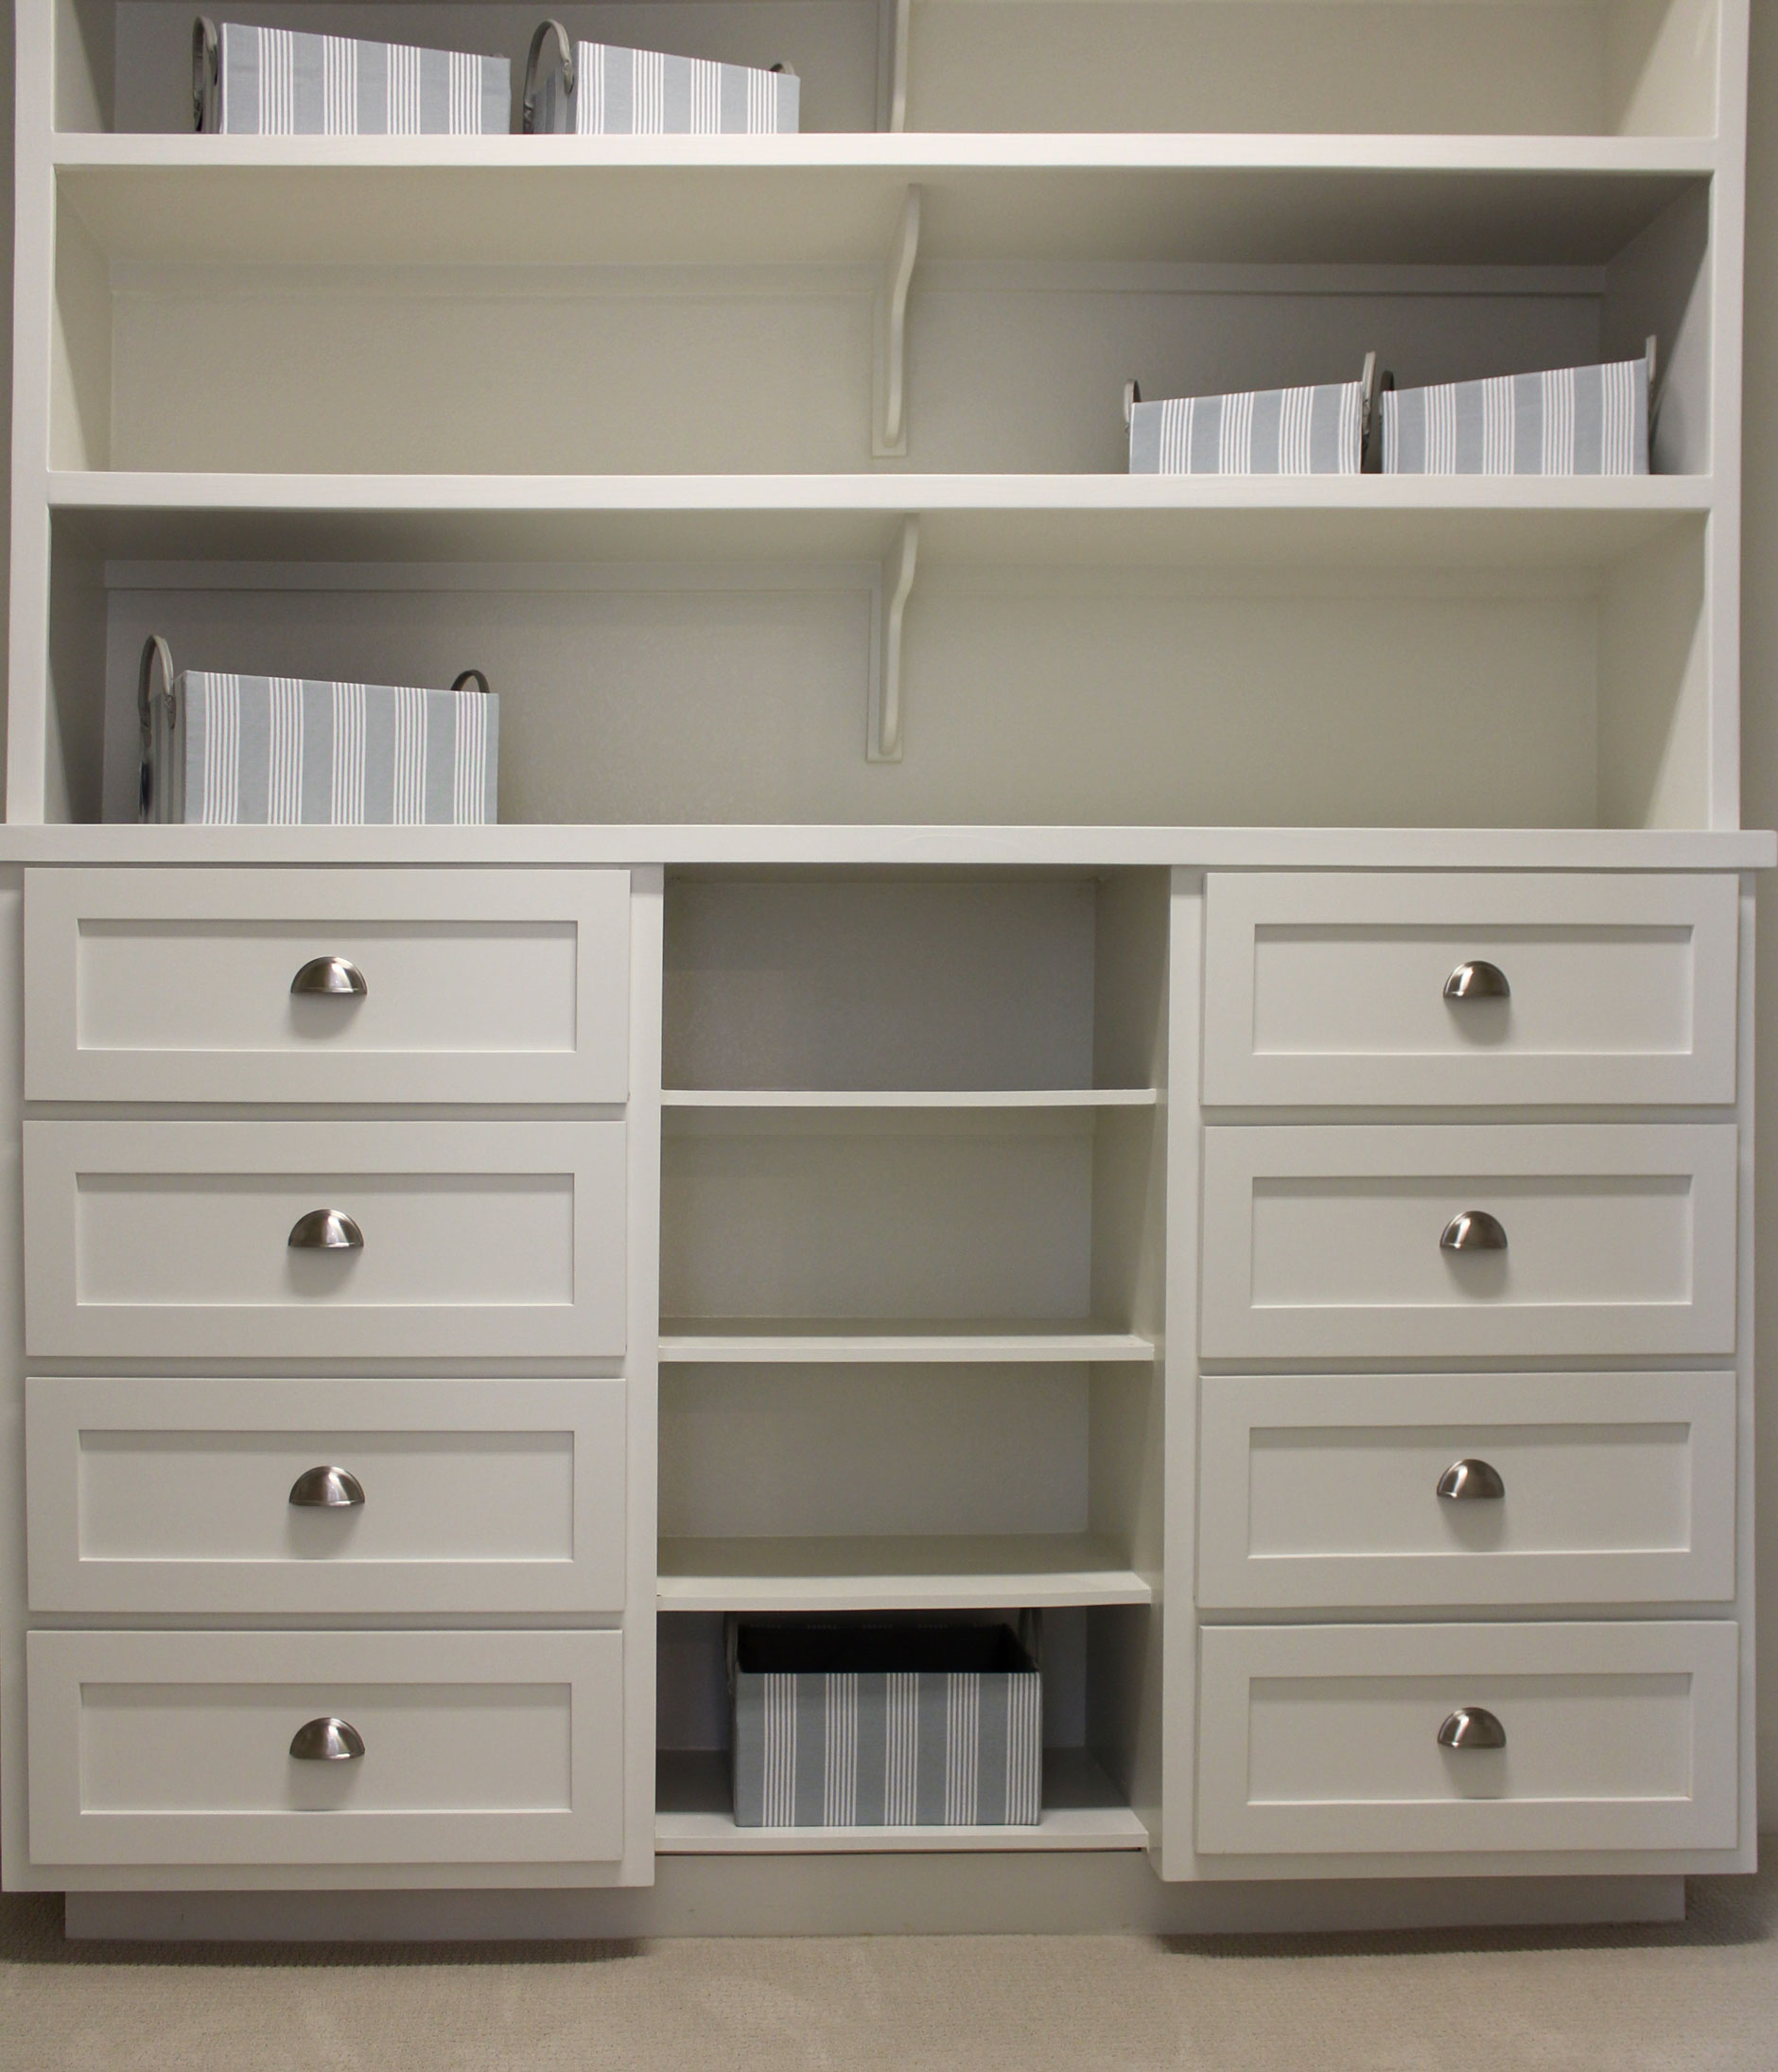 Built In Dresser 01. Burrows Cabinets Closet Storage With Drawers